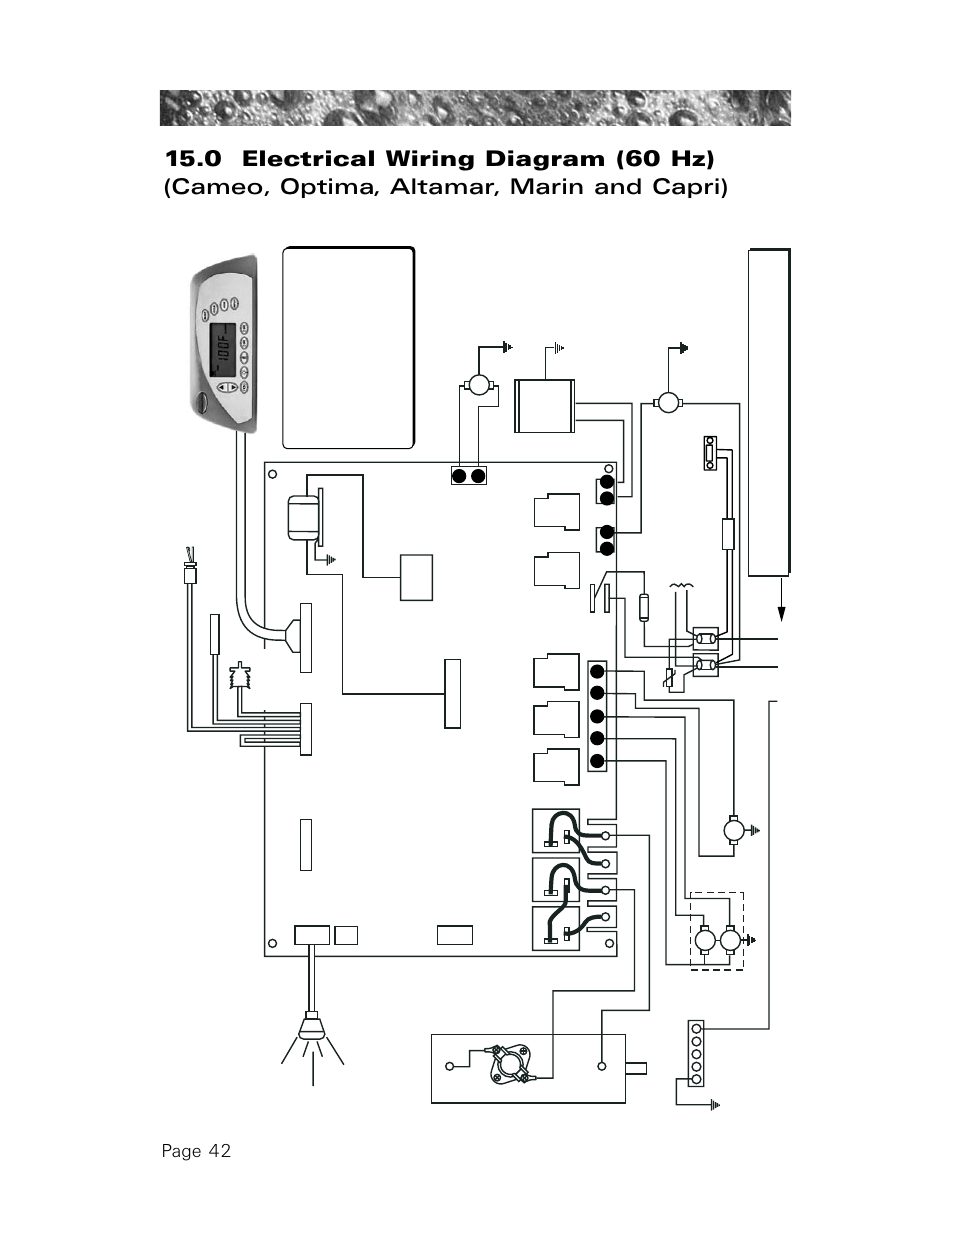 0 electrical wiring diagram (60 hz), Page 42 | Sundance Spas 850 User  Manual | Page 46 / 52